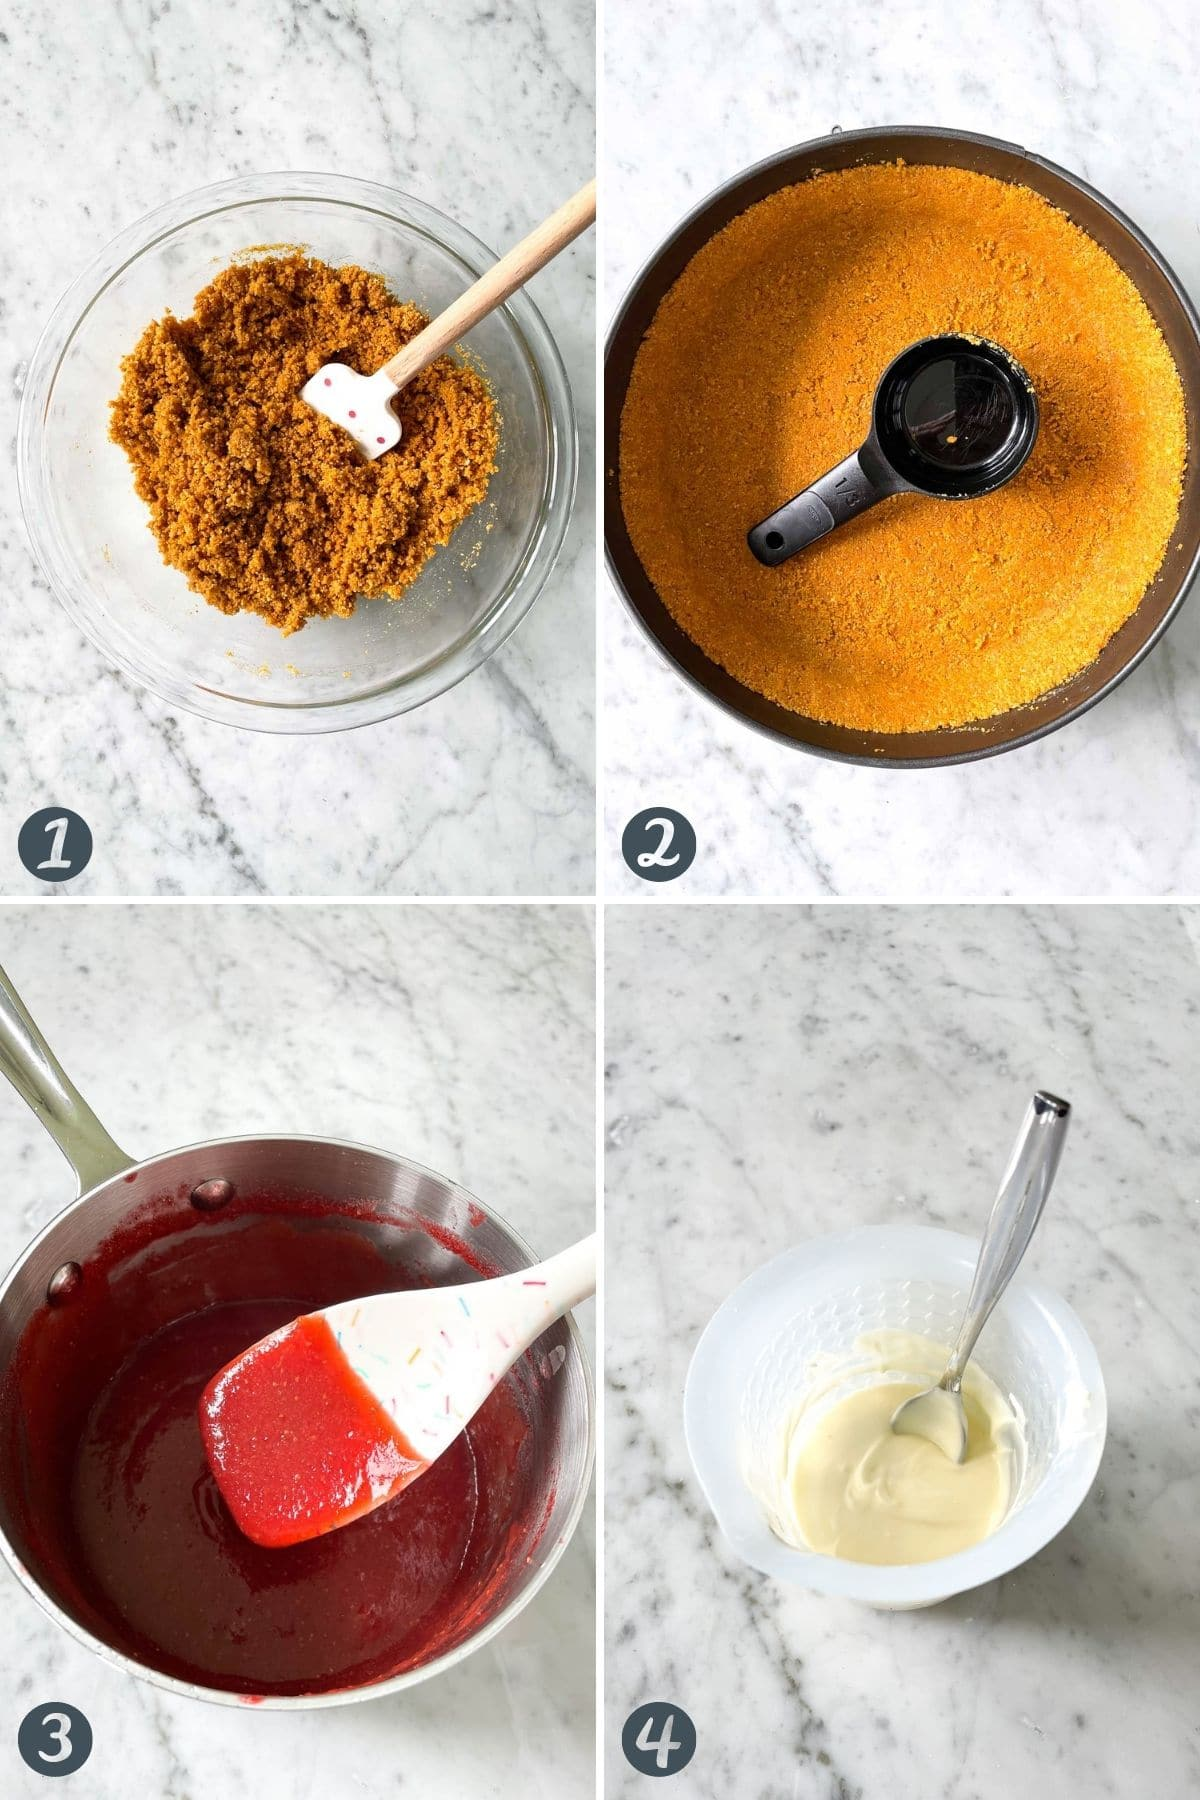 Steps for making this cheesecake recipe